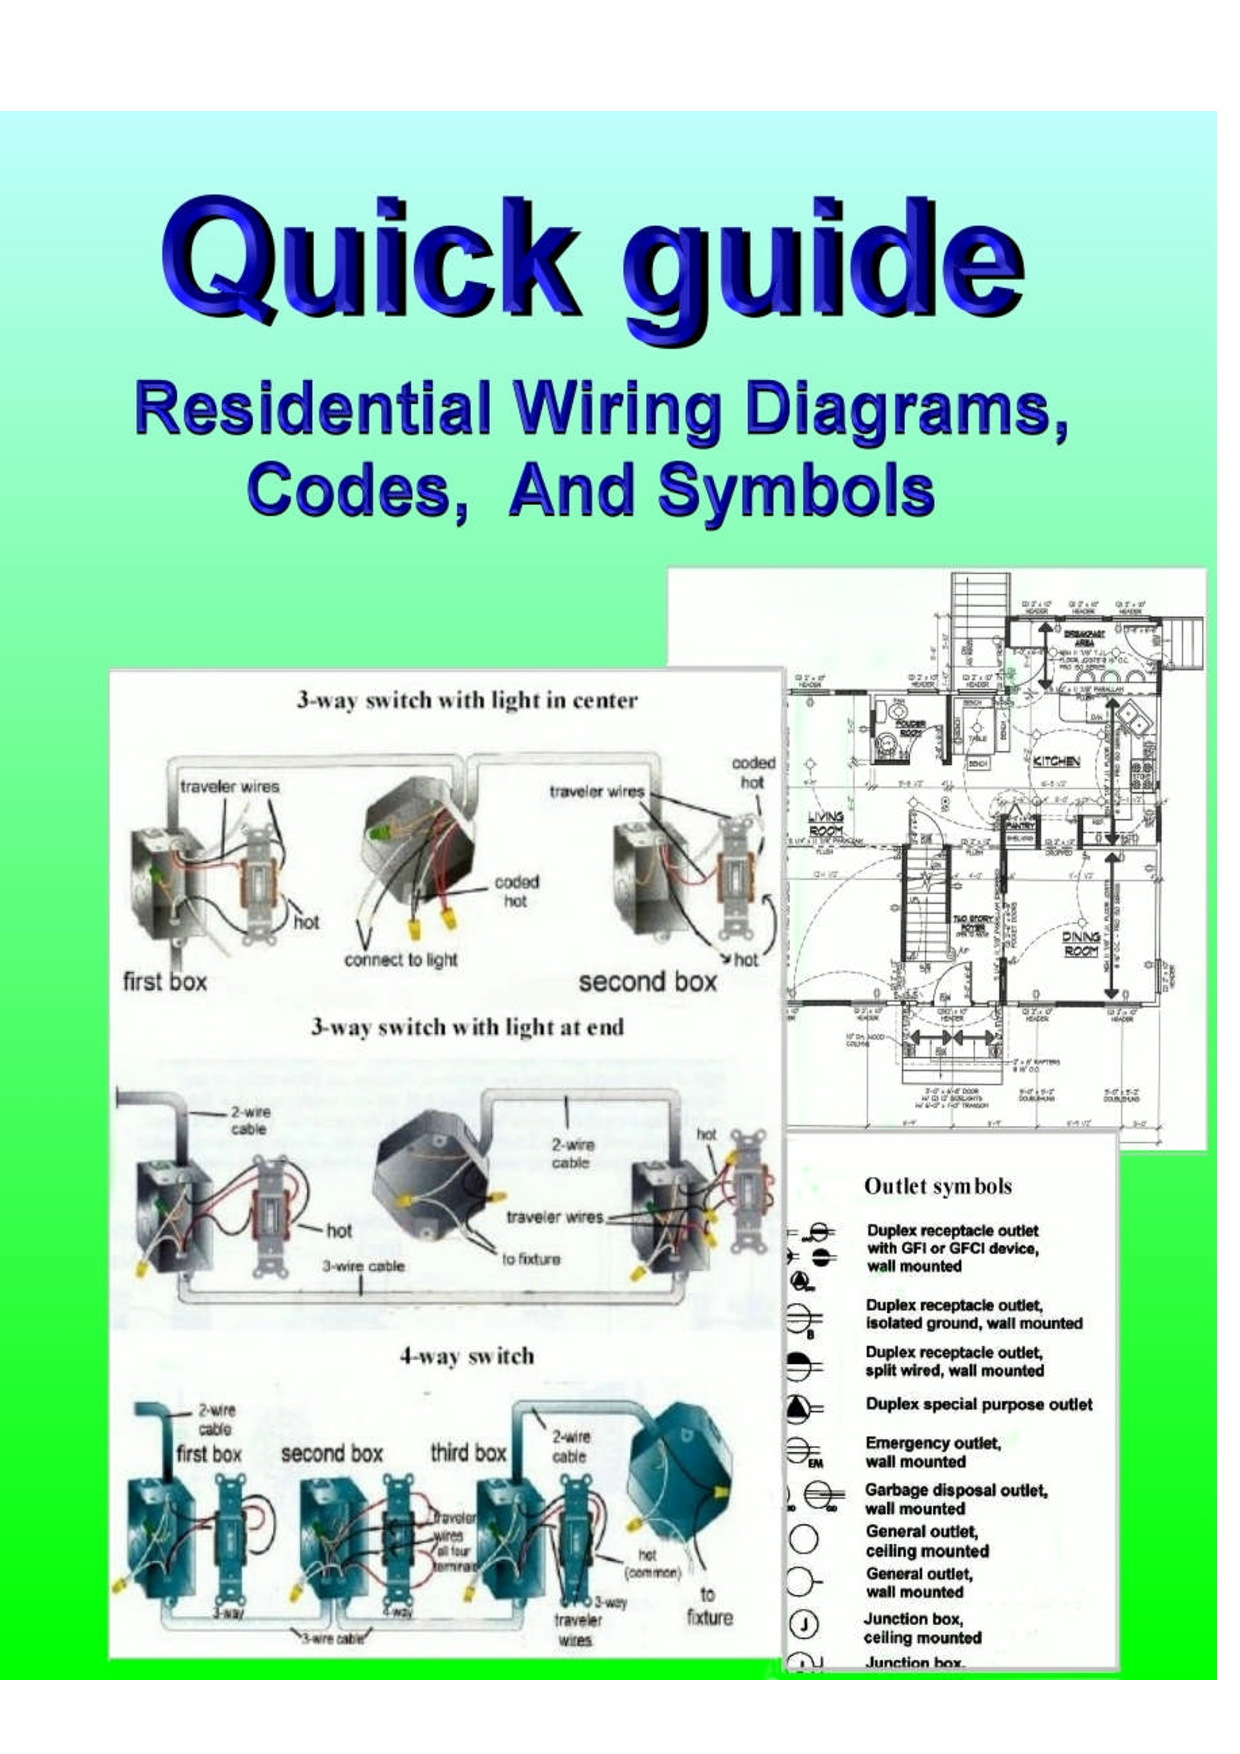 home electrical wiring diagrams pdf download legal documents 39 rh pinterest com house electrical wiring guide pdf indian house wiring guide pdf